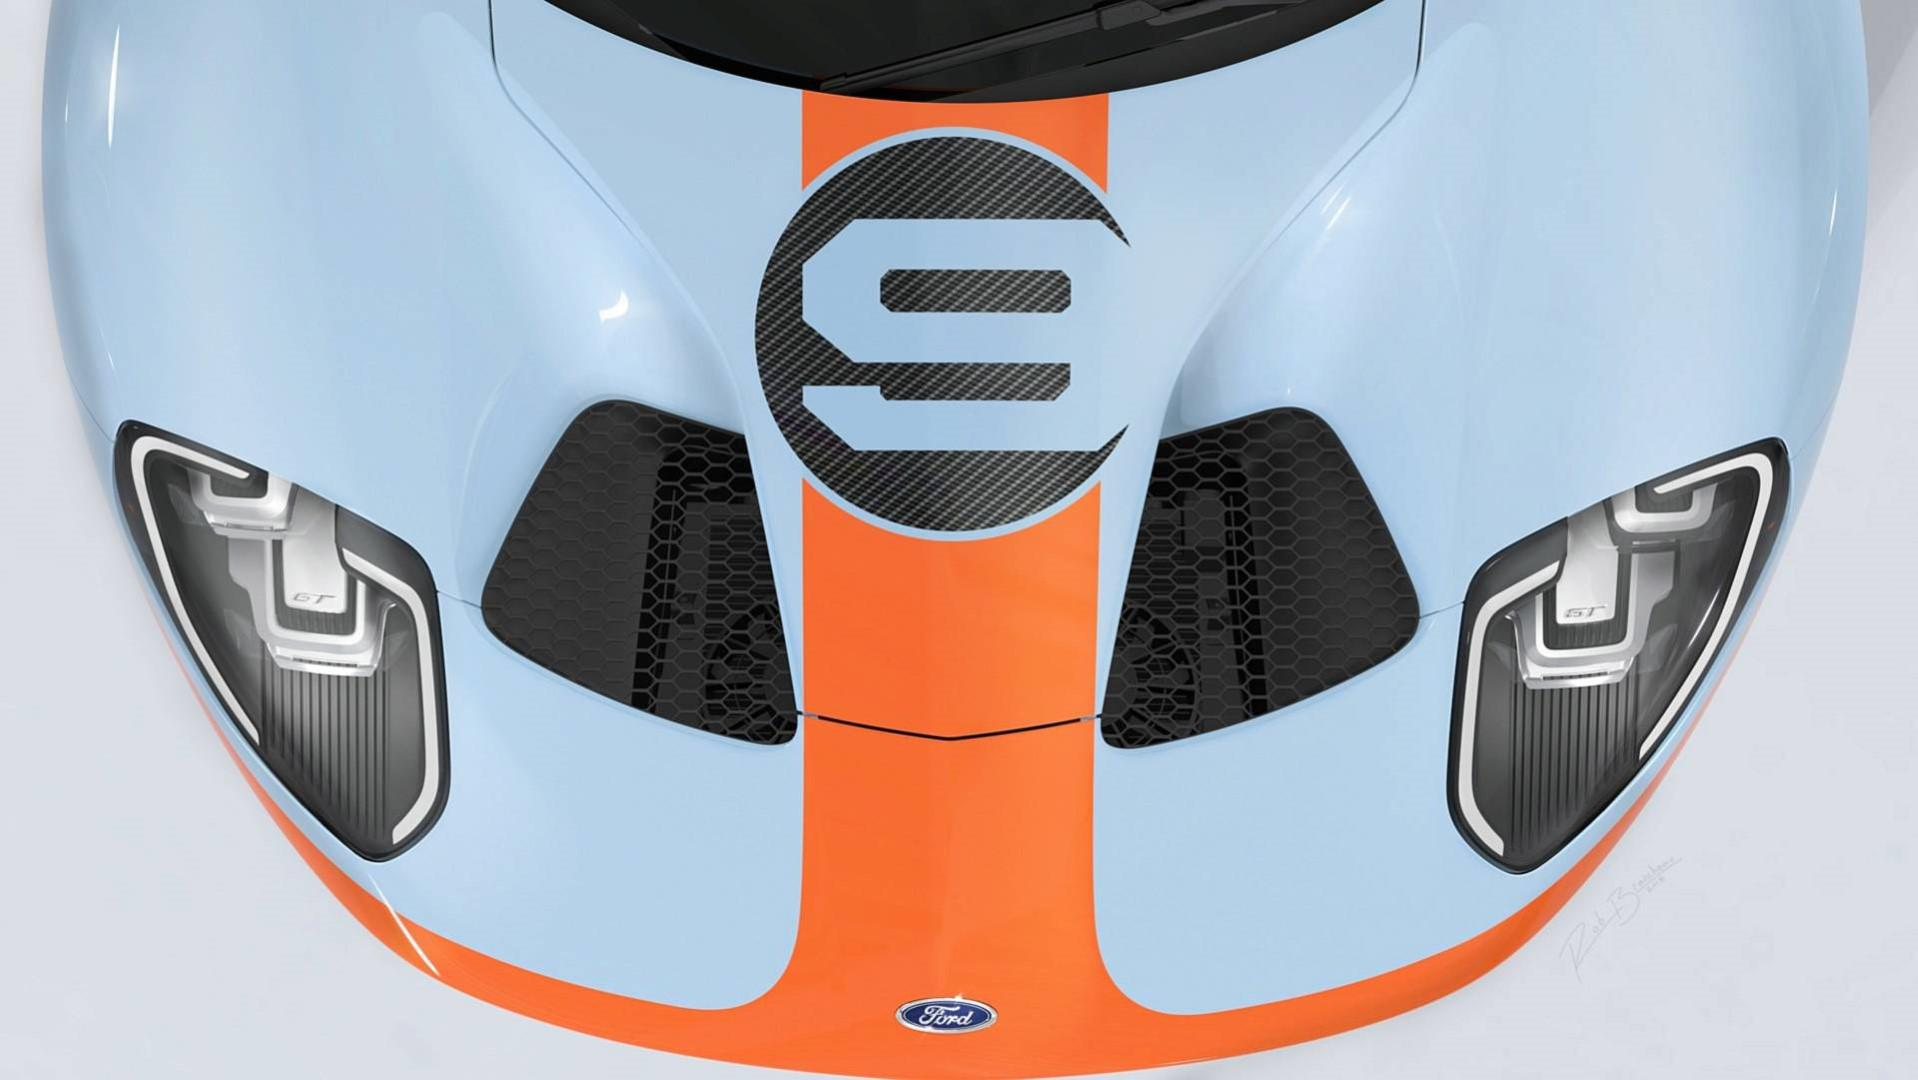 ford-devoile-une-livree-specifique-de-sa-gt-ford-gt-heritage-edition-gulf-862-3.jpg